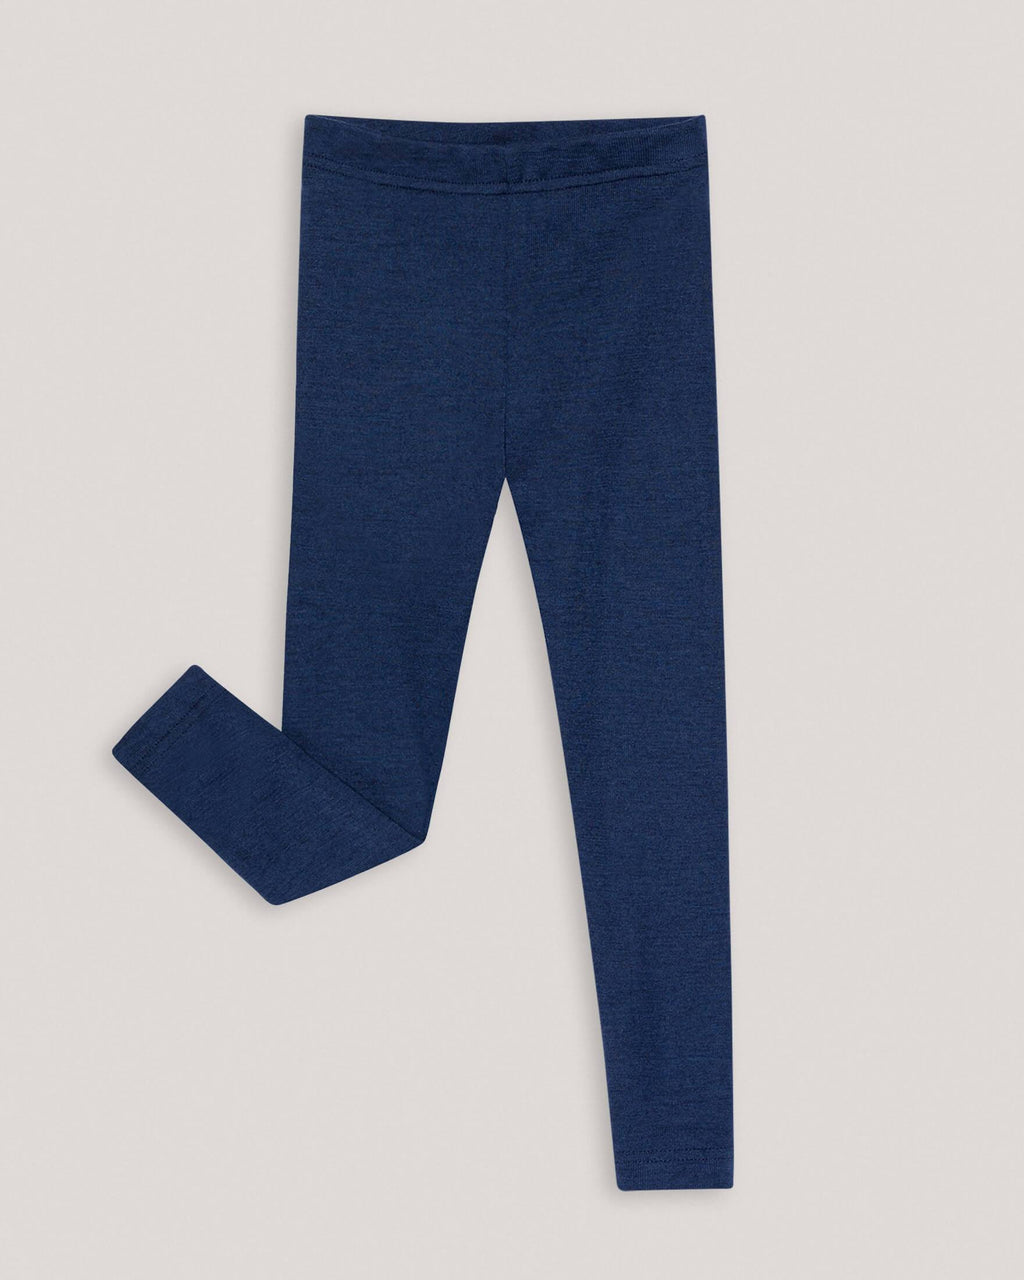 variant_3 | EN Navy Leggings Kids Multicolor ENGEL | DE Blaue Leggings Kinder Bunt ENGEL